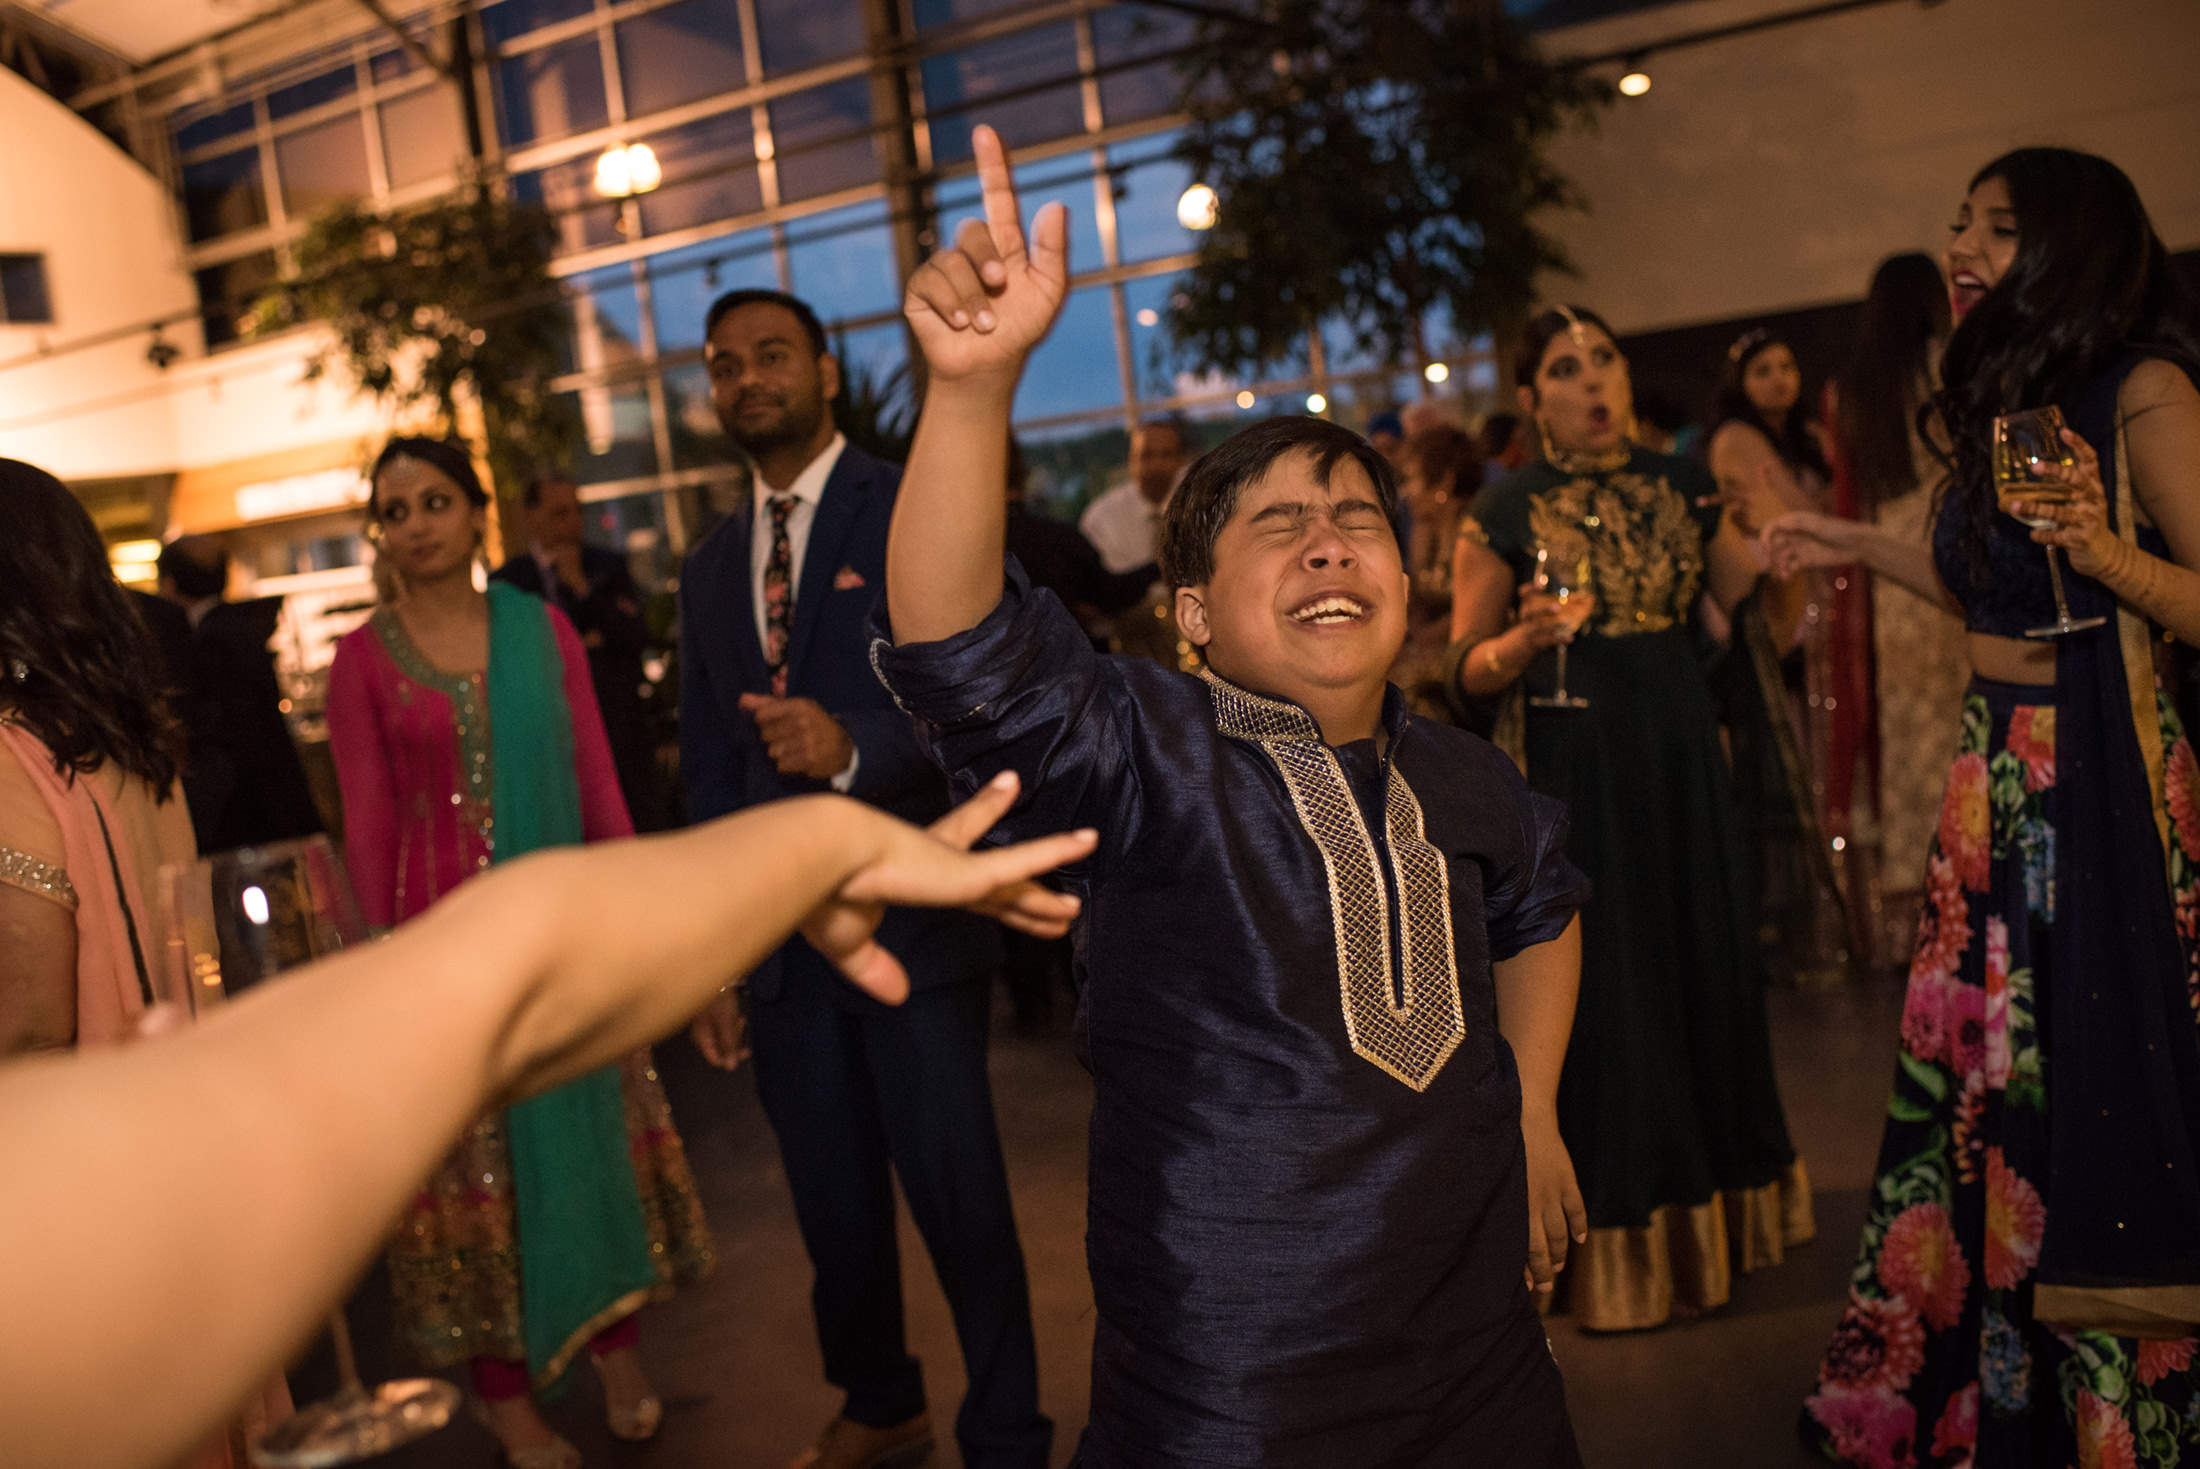 Edmonton_wedding_photographers_enjoy_center_wedding_Kiran_faisal_40.jpg